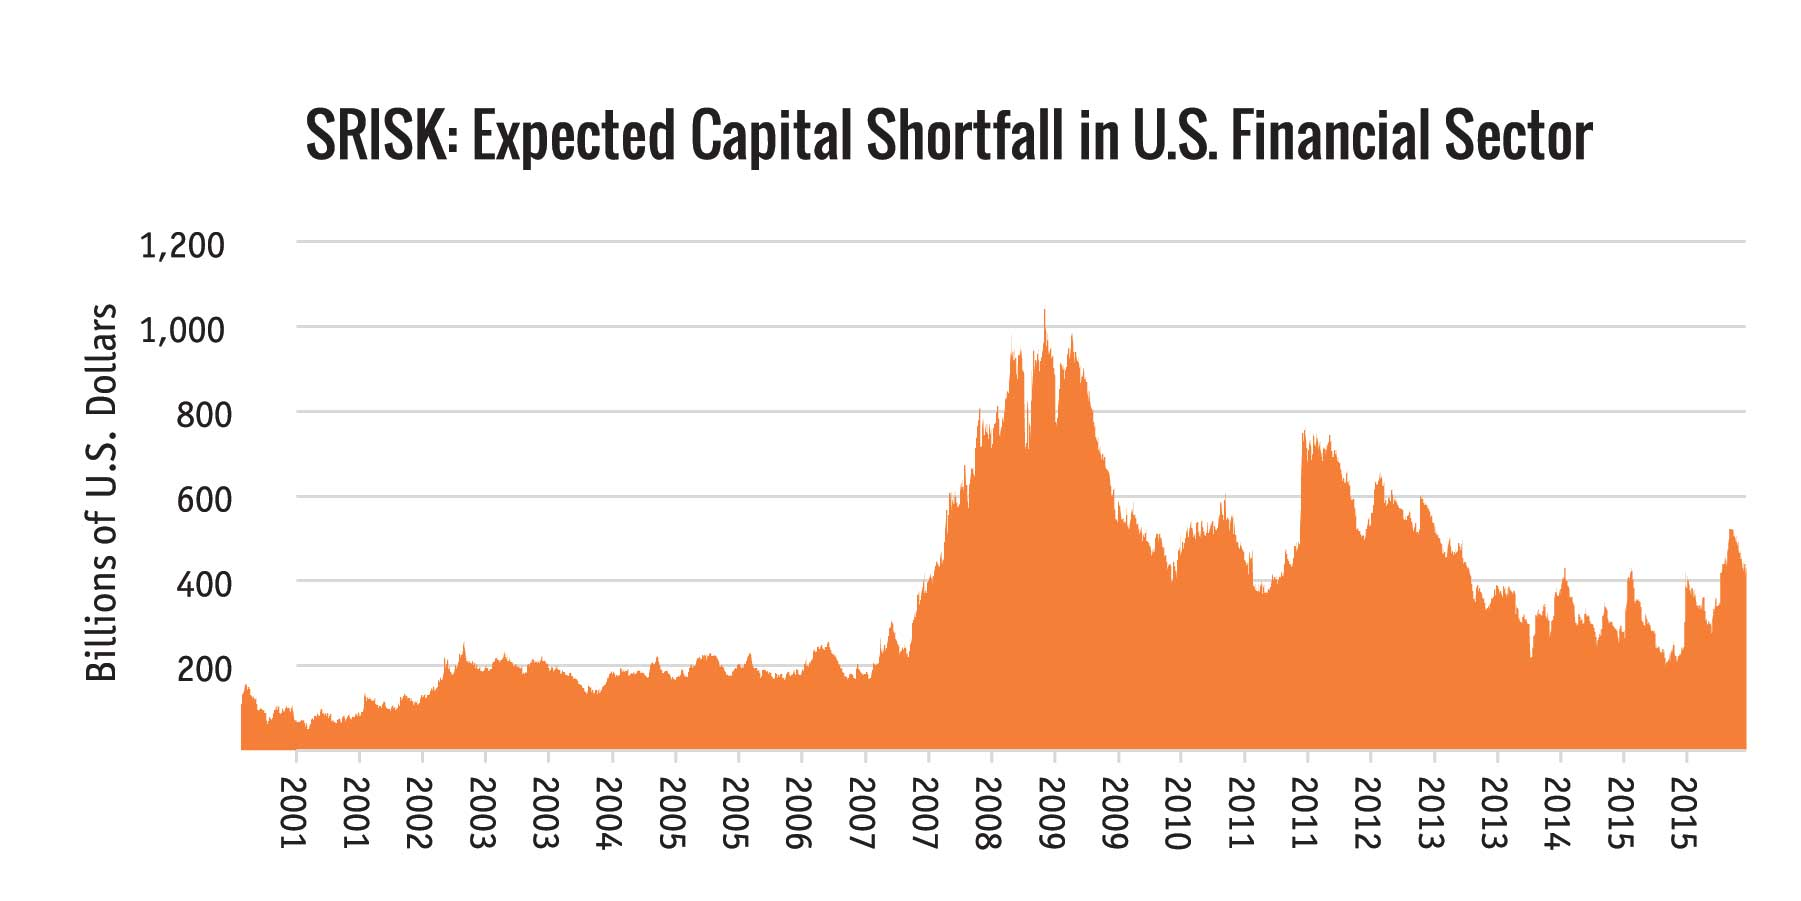 SRISK: Expected Capital Shortfall in U.S. Financial Sector